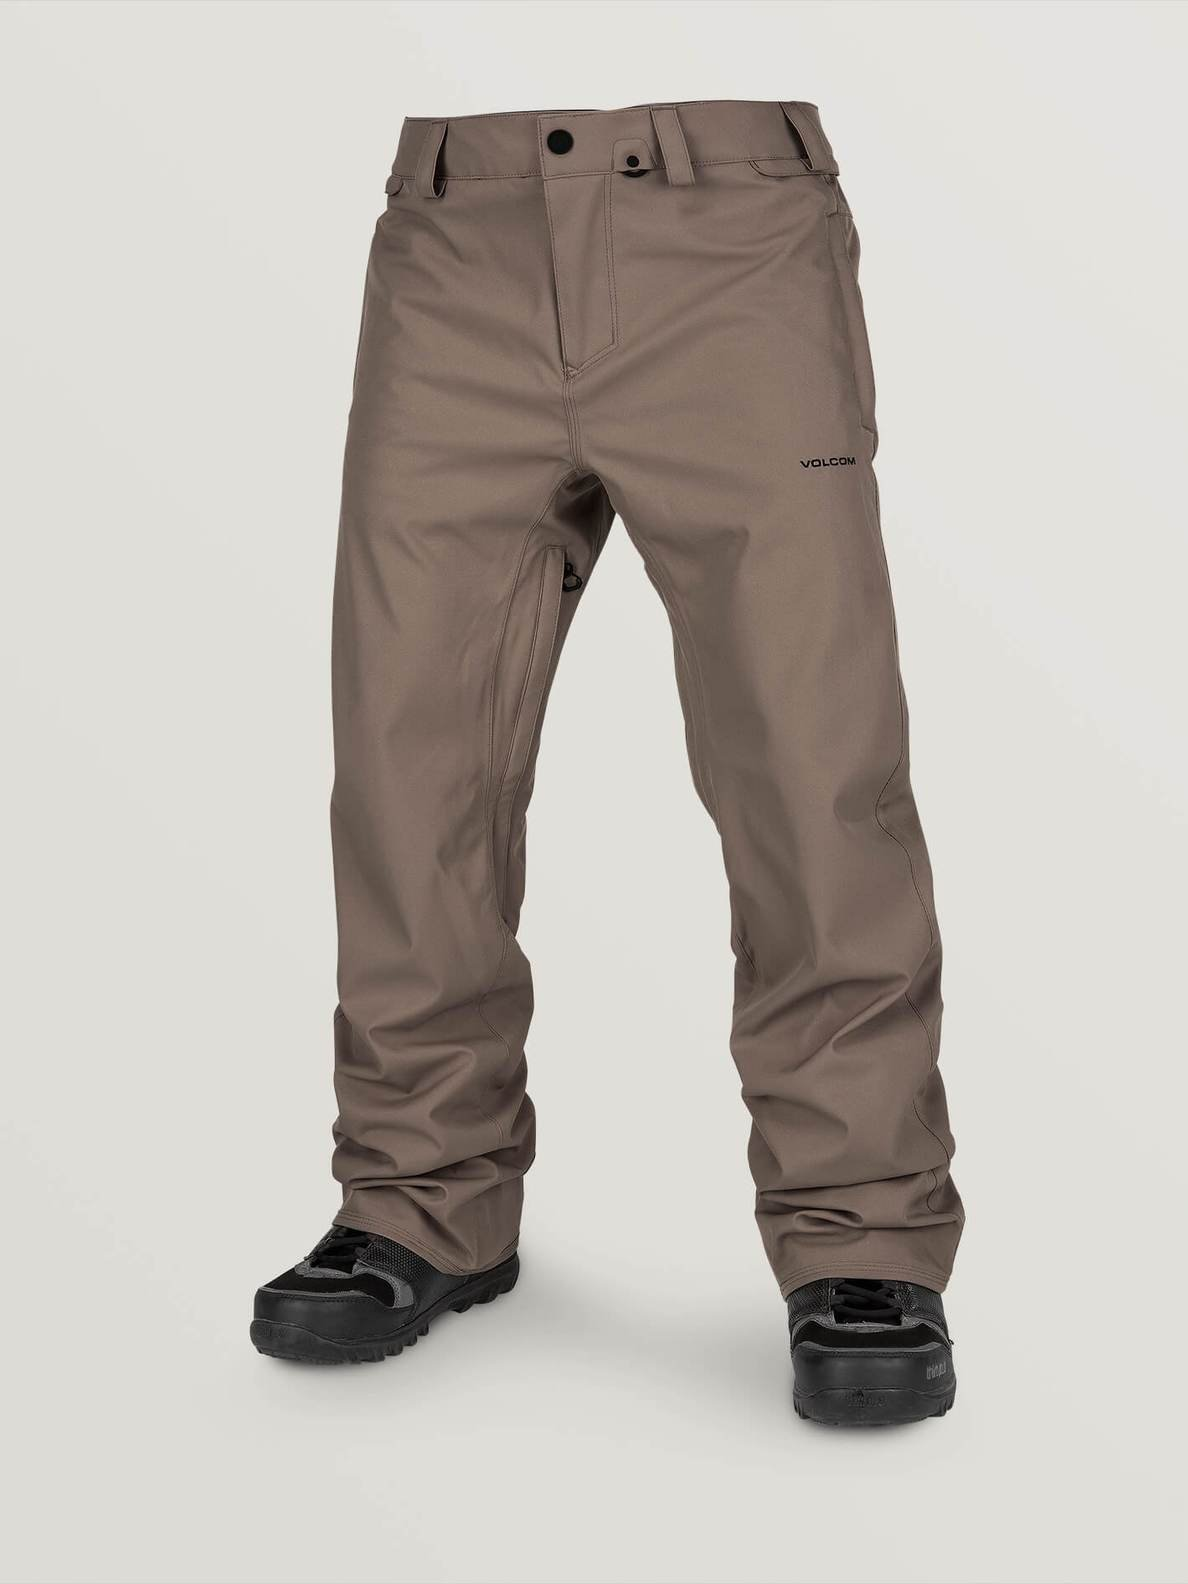 Volcom Freakin Snow Chino (Multiple Color Options)